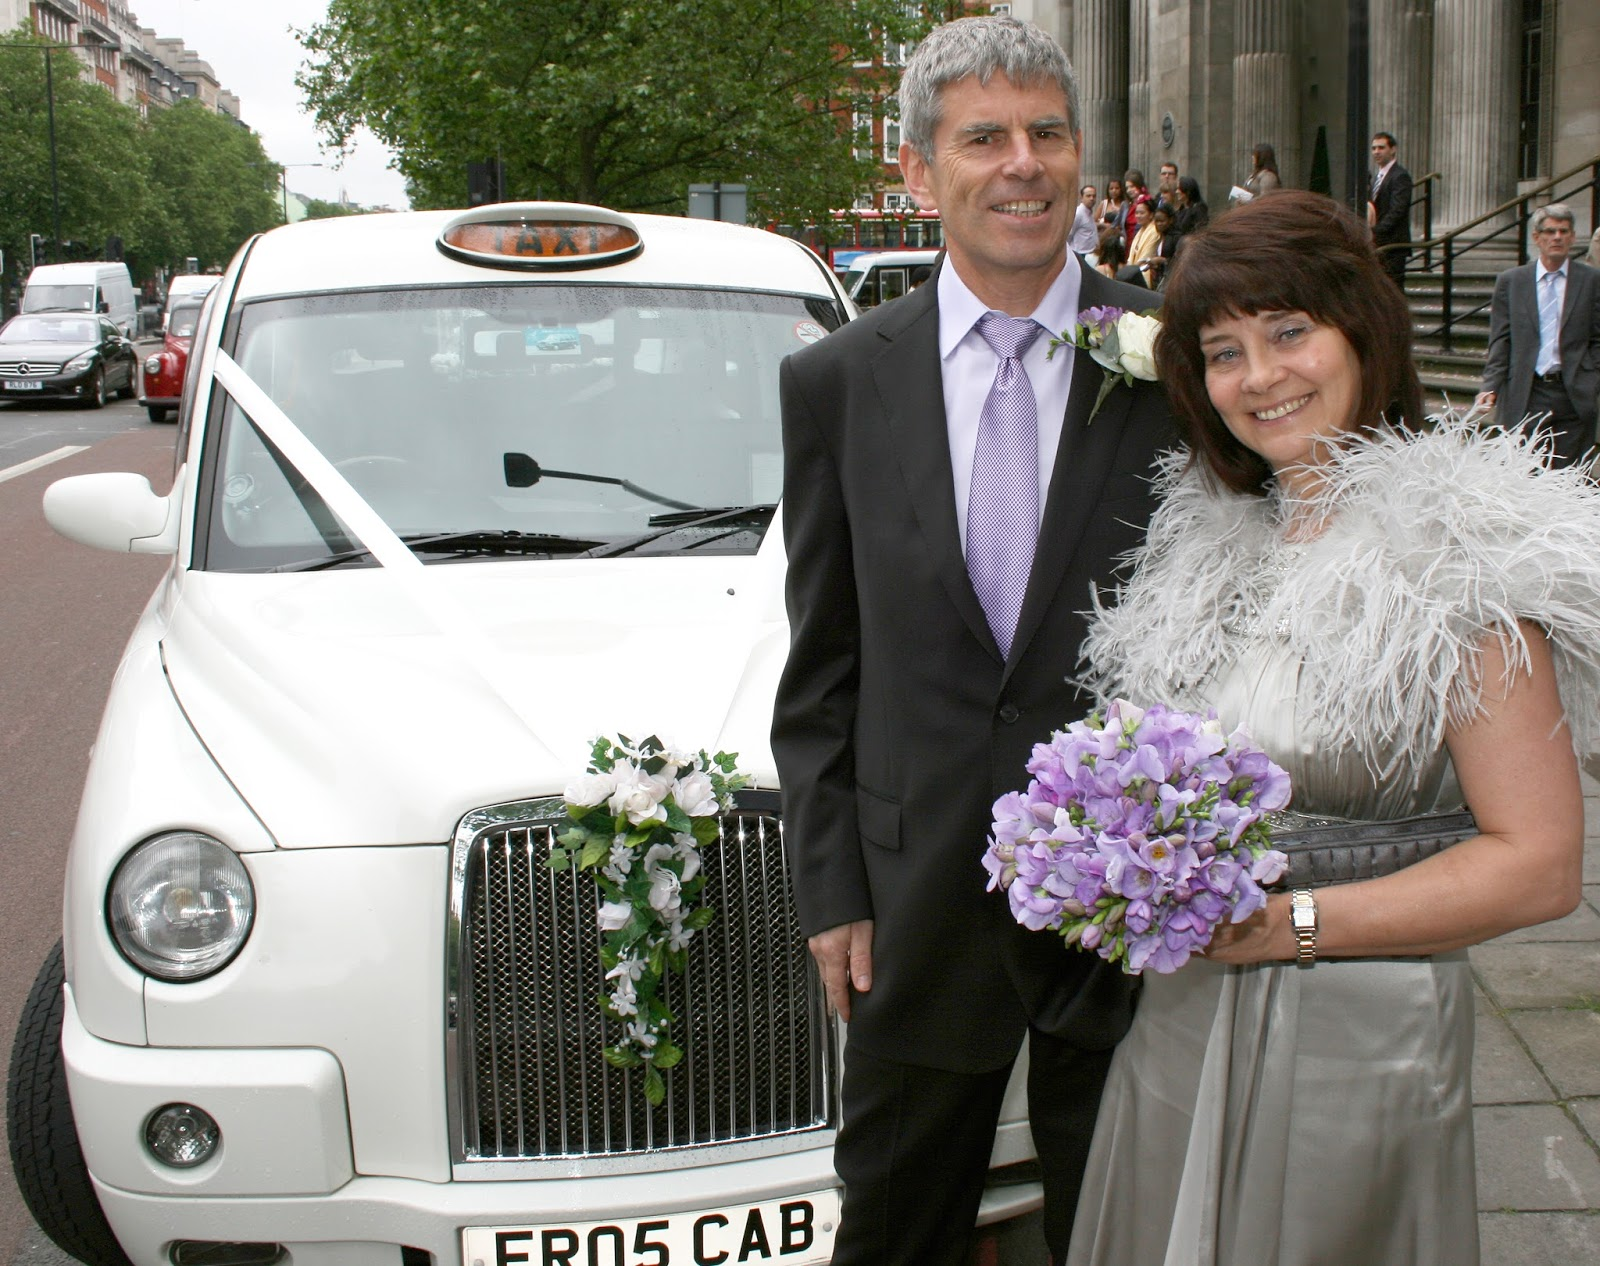 Blogger Gail Hanlon at her second wedding in London with husband John Hanlon in 2010